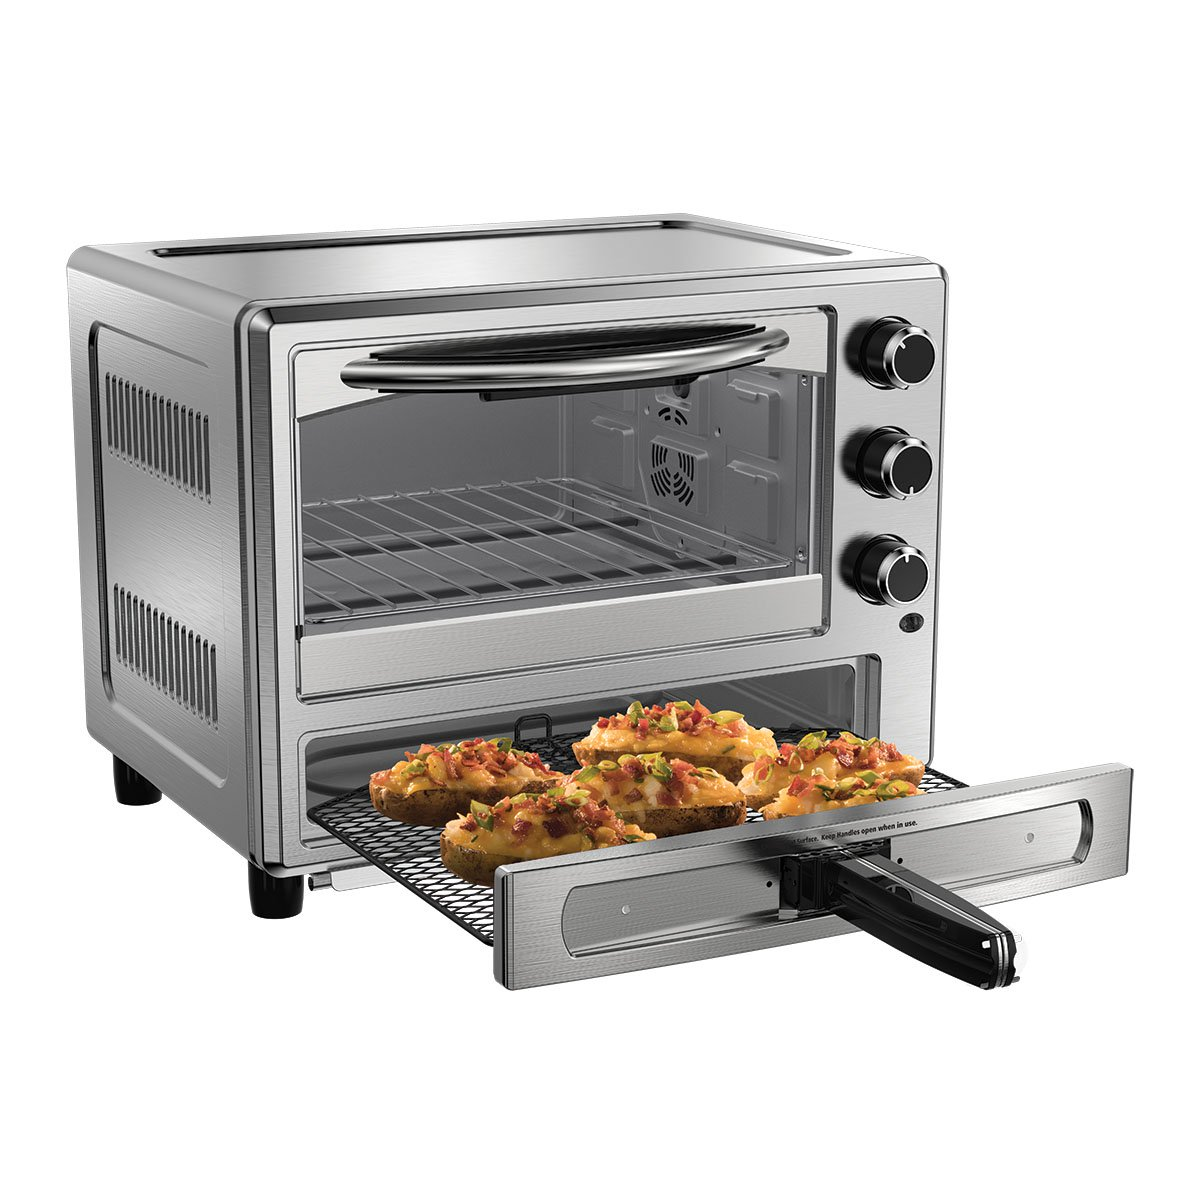 Best Convection Oven Reviews 2019: Countertop Models Rated